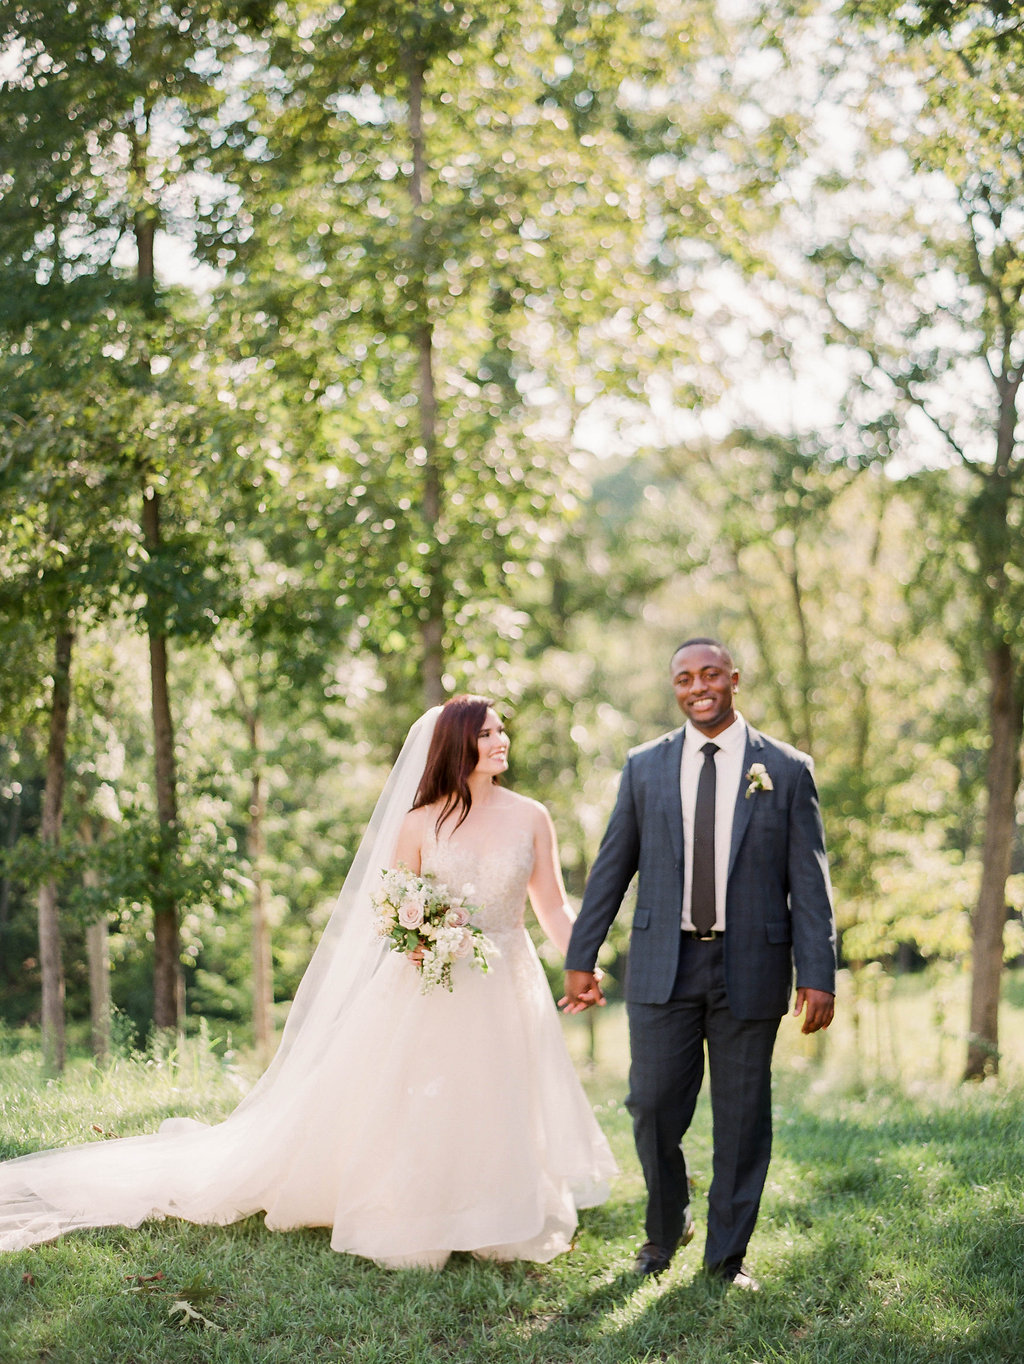 Elegant Chateau Wedding Inspiration in St Louis - photo by Shannon Duggan Photography http://ruffledblog.com/elegant-chateau-wedding-inspiration-in-st-louis